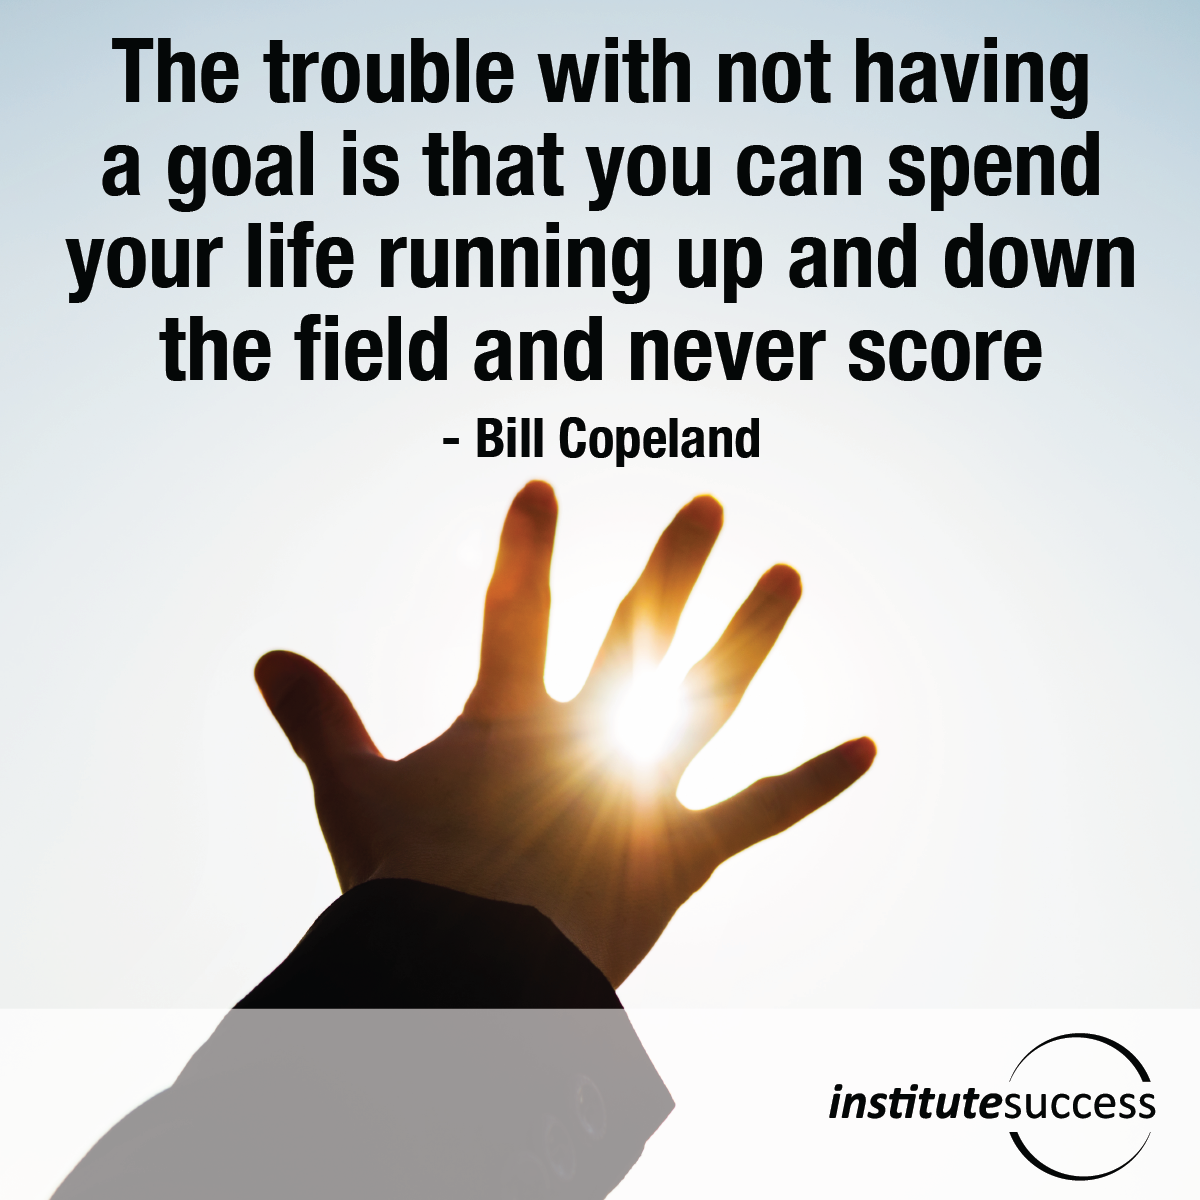 The trouble with not having a goal is that you can spend your life running up and down the field and never score – Bill Copeland